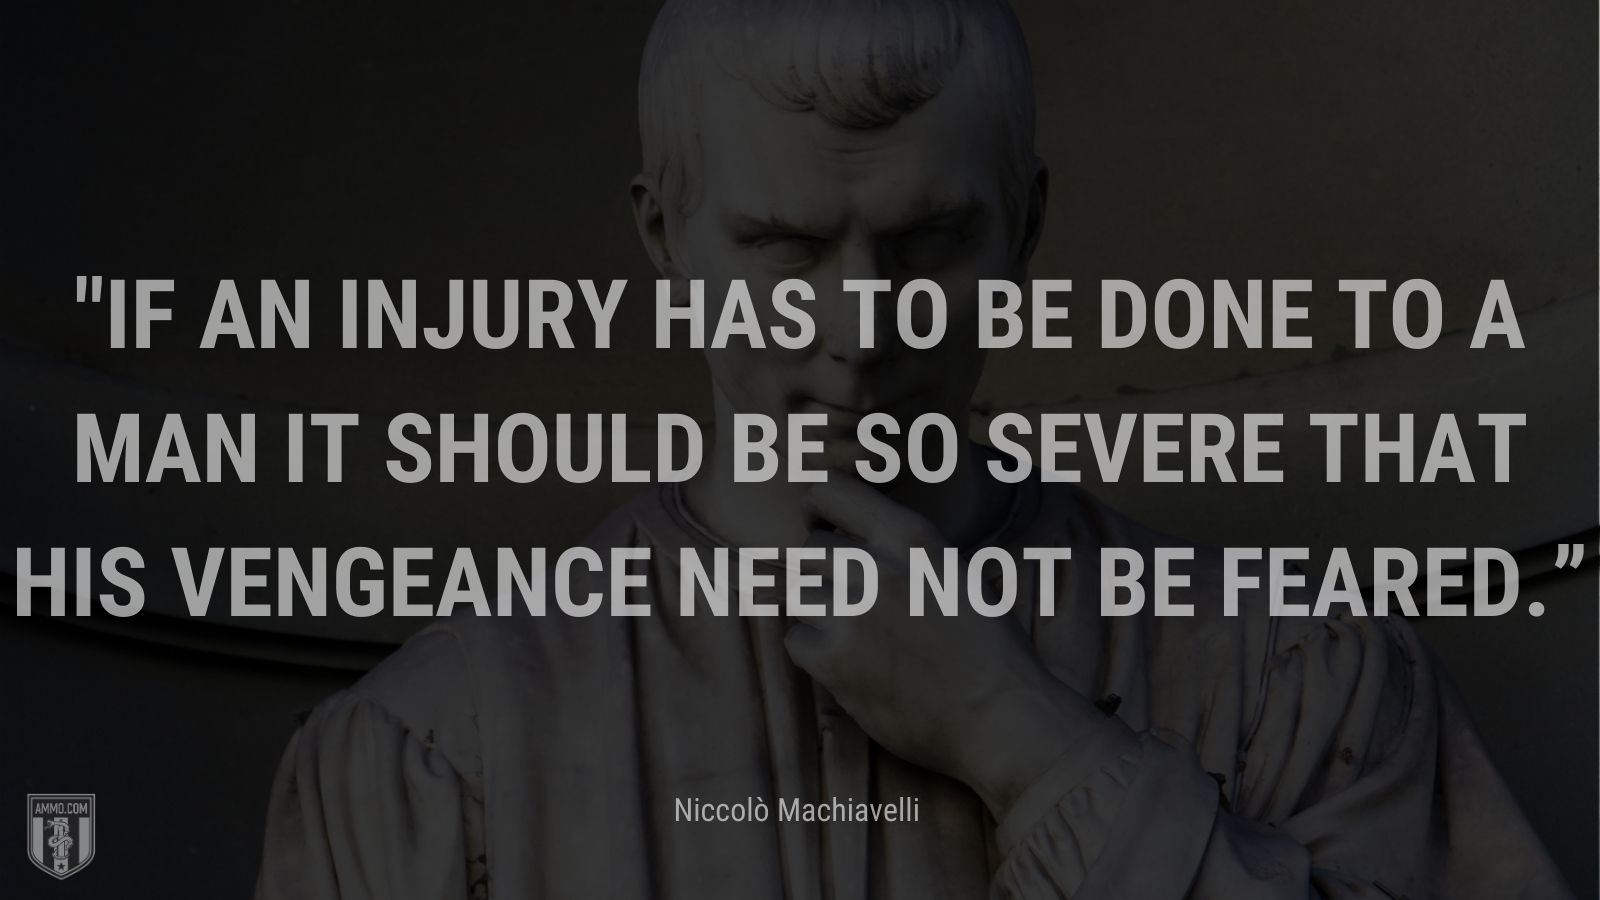 """""""If an injury has to be done to a man it should be so severe that his vengeance need not be feared."""" - Niccolò Machiavelli"""